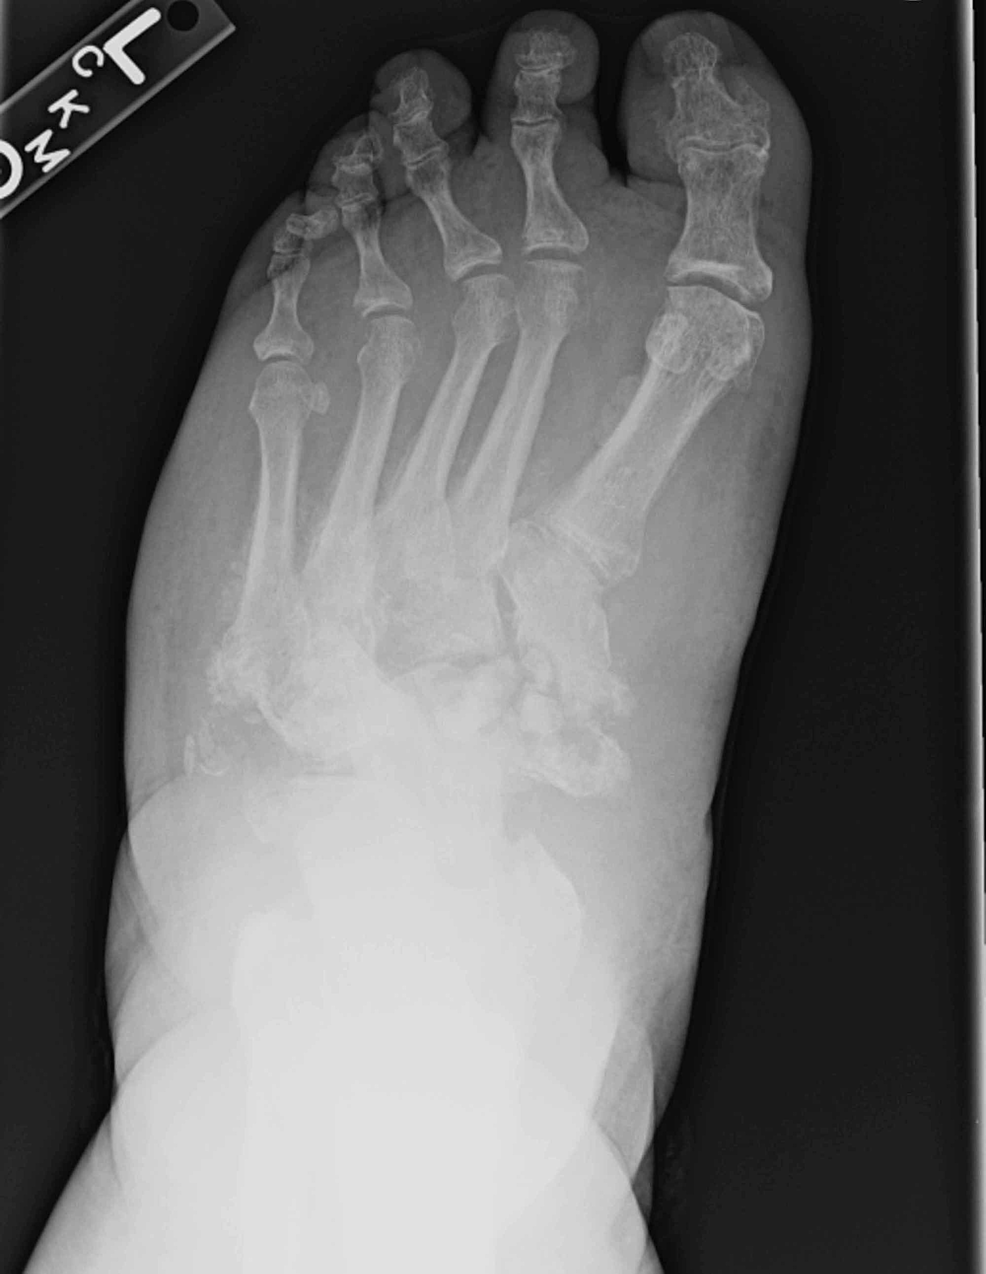 Anteriorposterior-foot-view-demonstrated-diffuse-tarsal-bone-fragmentation-and-obliteration-of-native-joint-spaces-consistent-with-active-Charcot-neuroarthropathy.